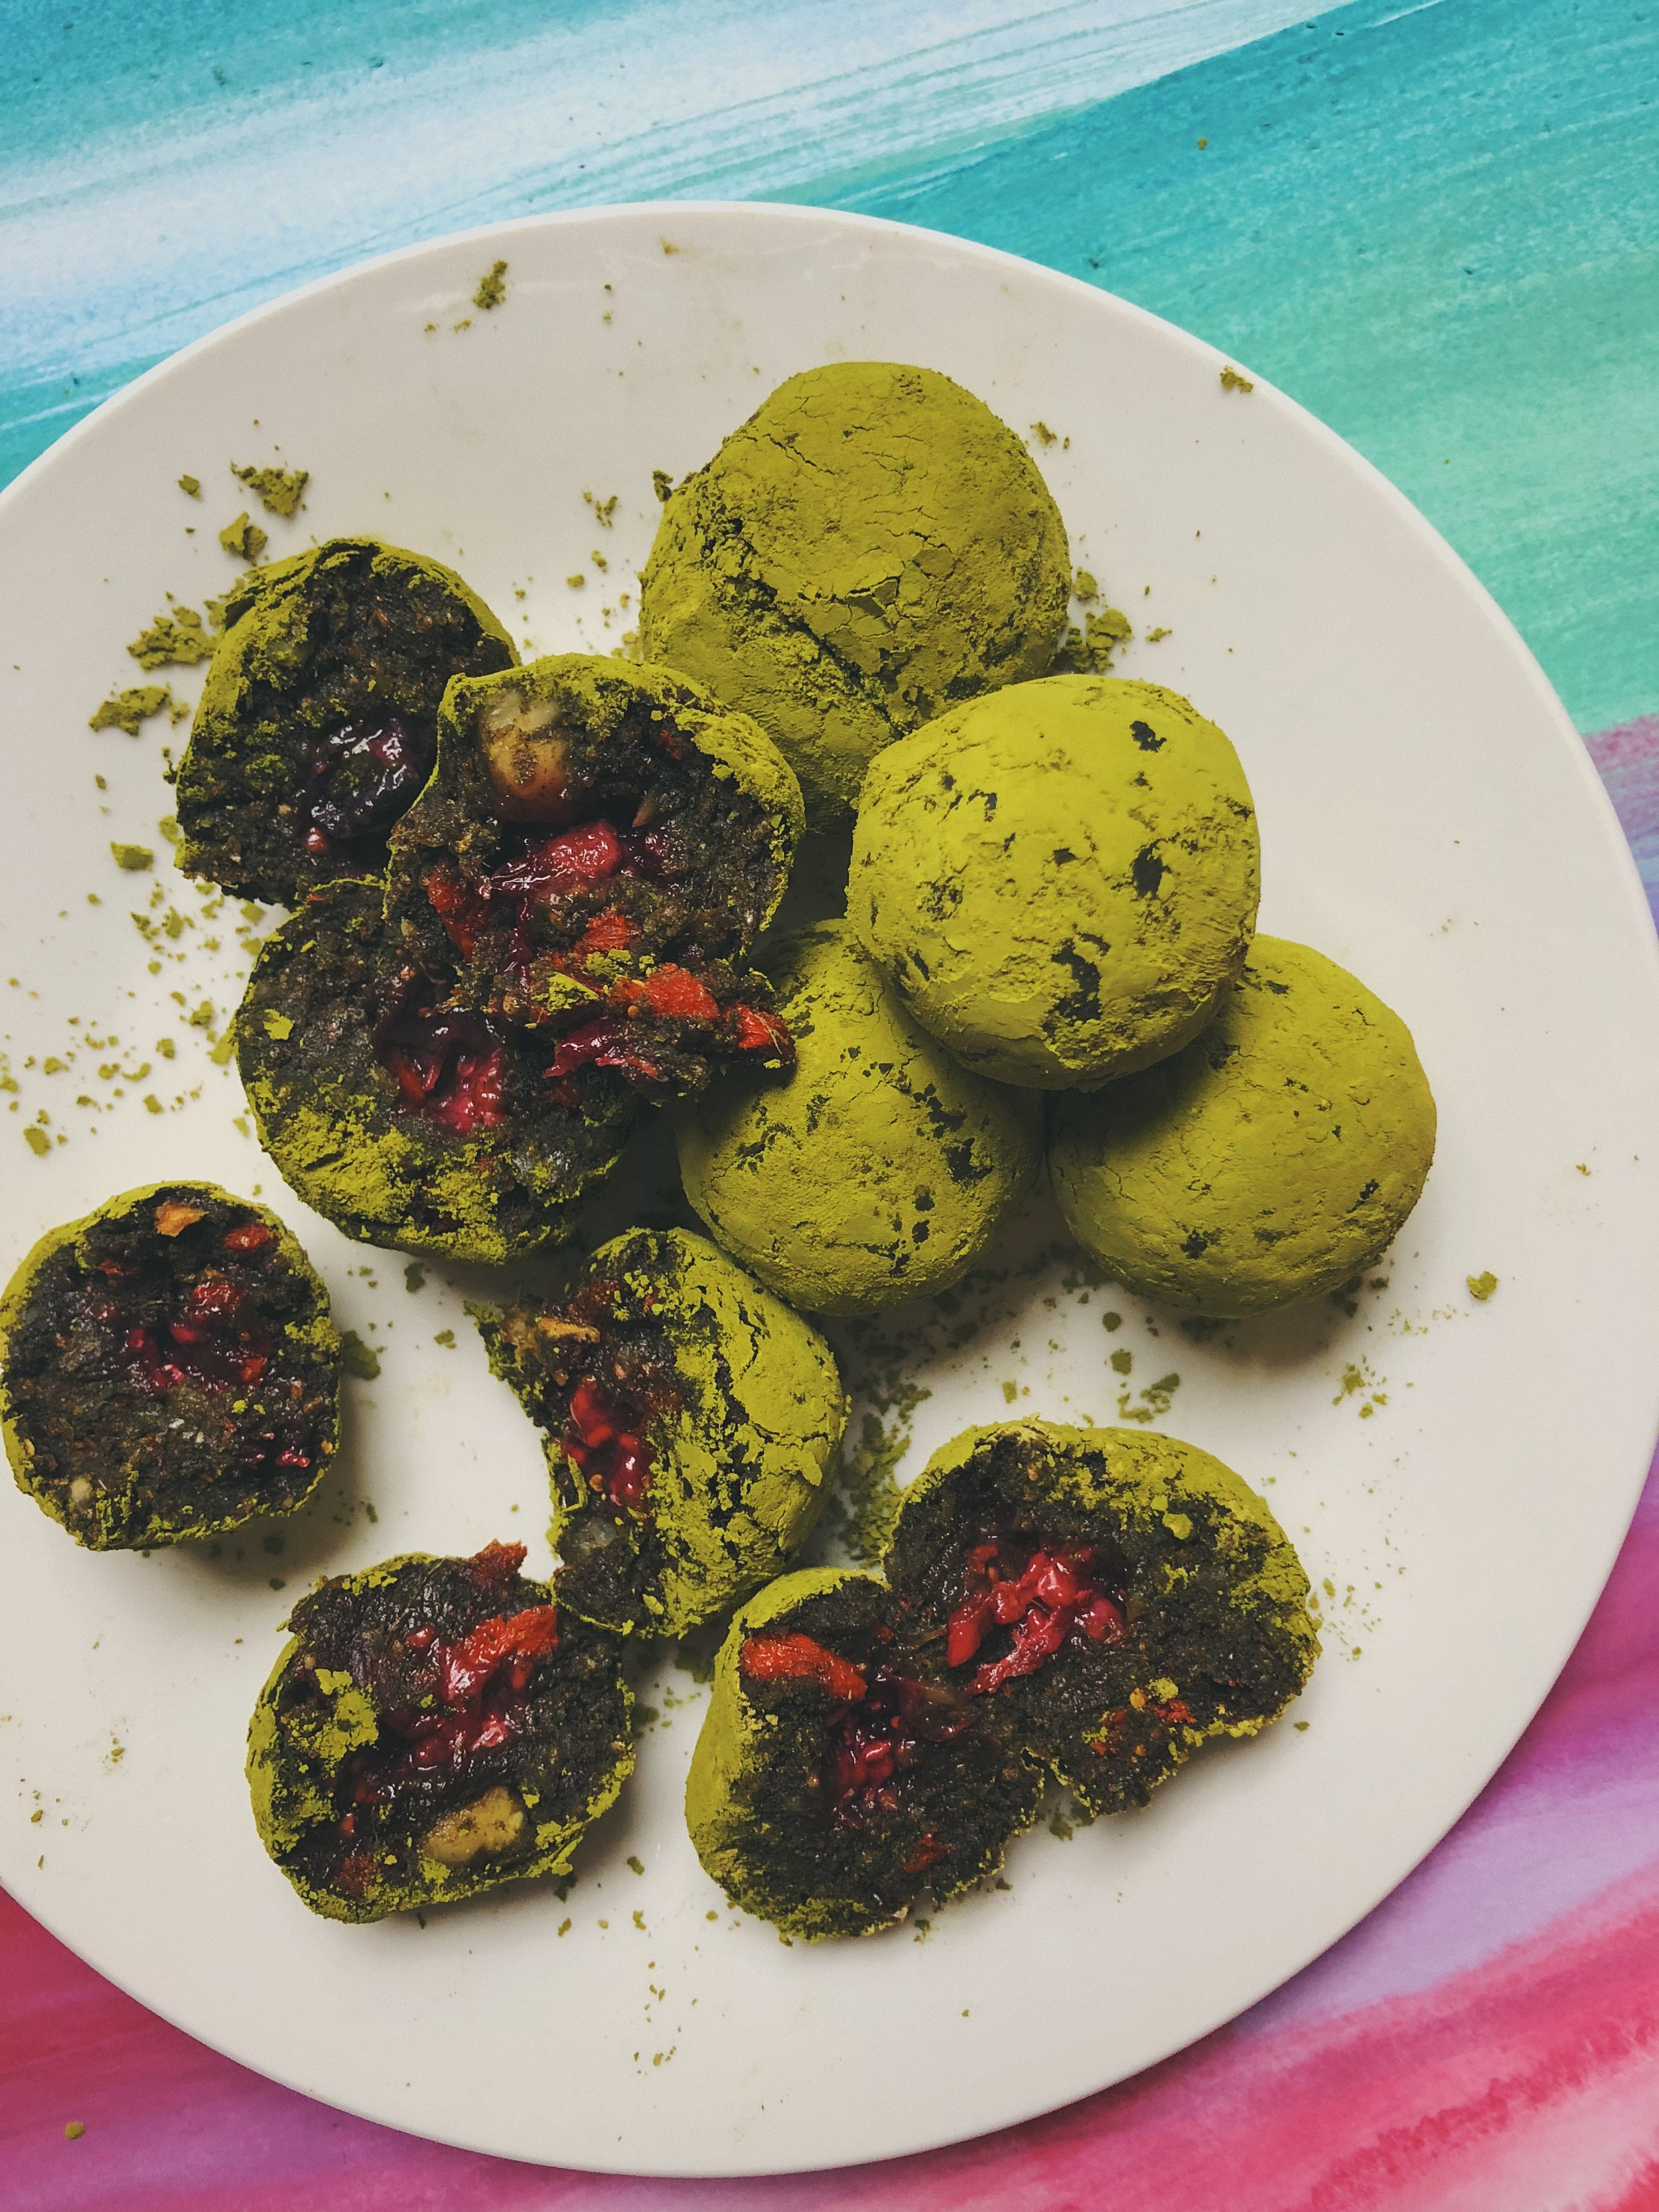 Best enjoyed with a matcha latte just before you head off for a hike :)